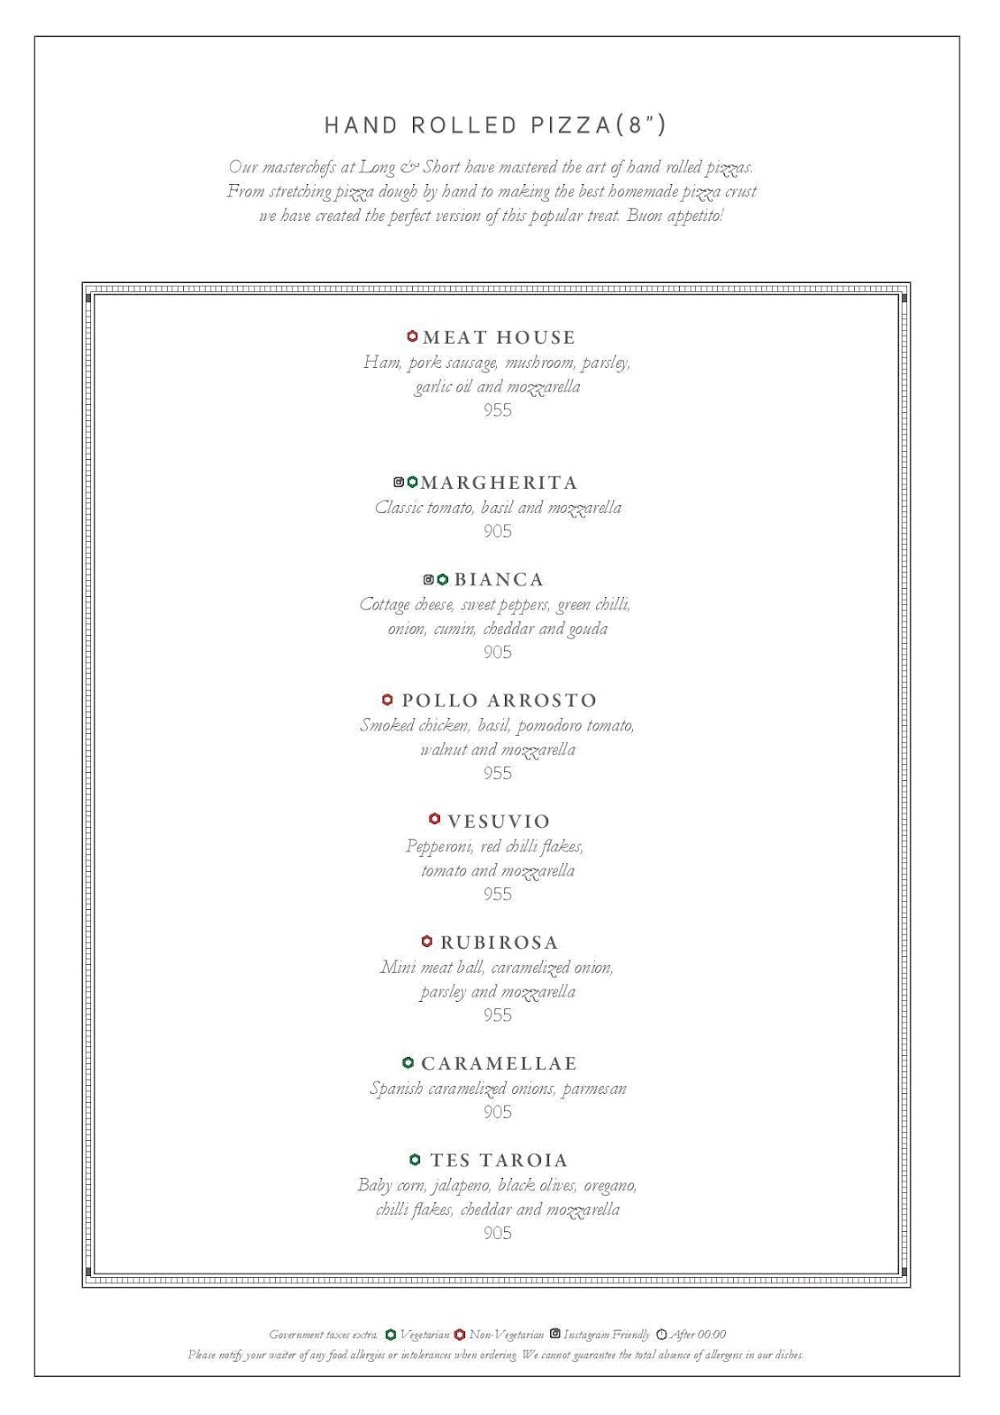 Long & Short - InterContinental menu 8